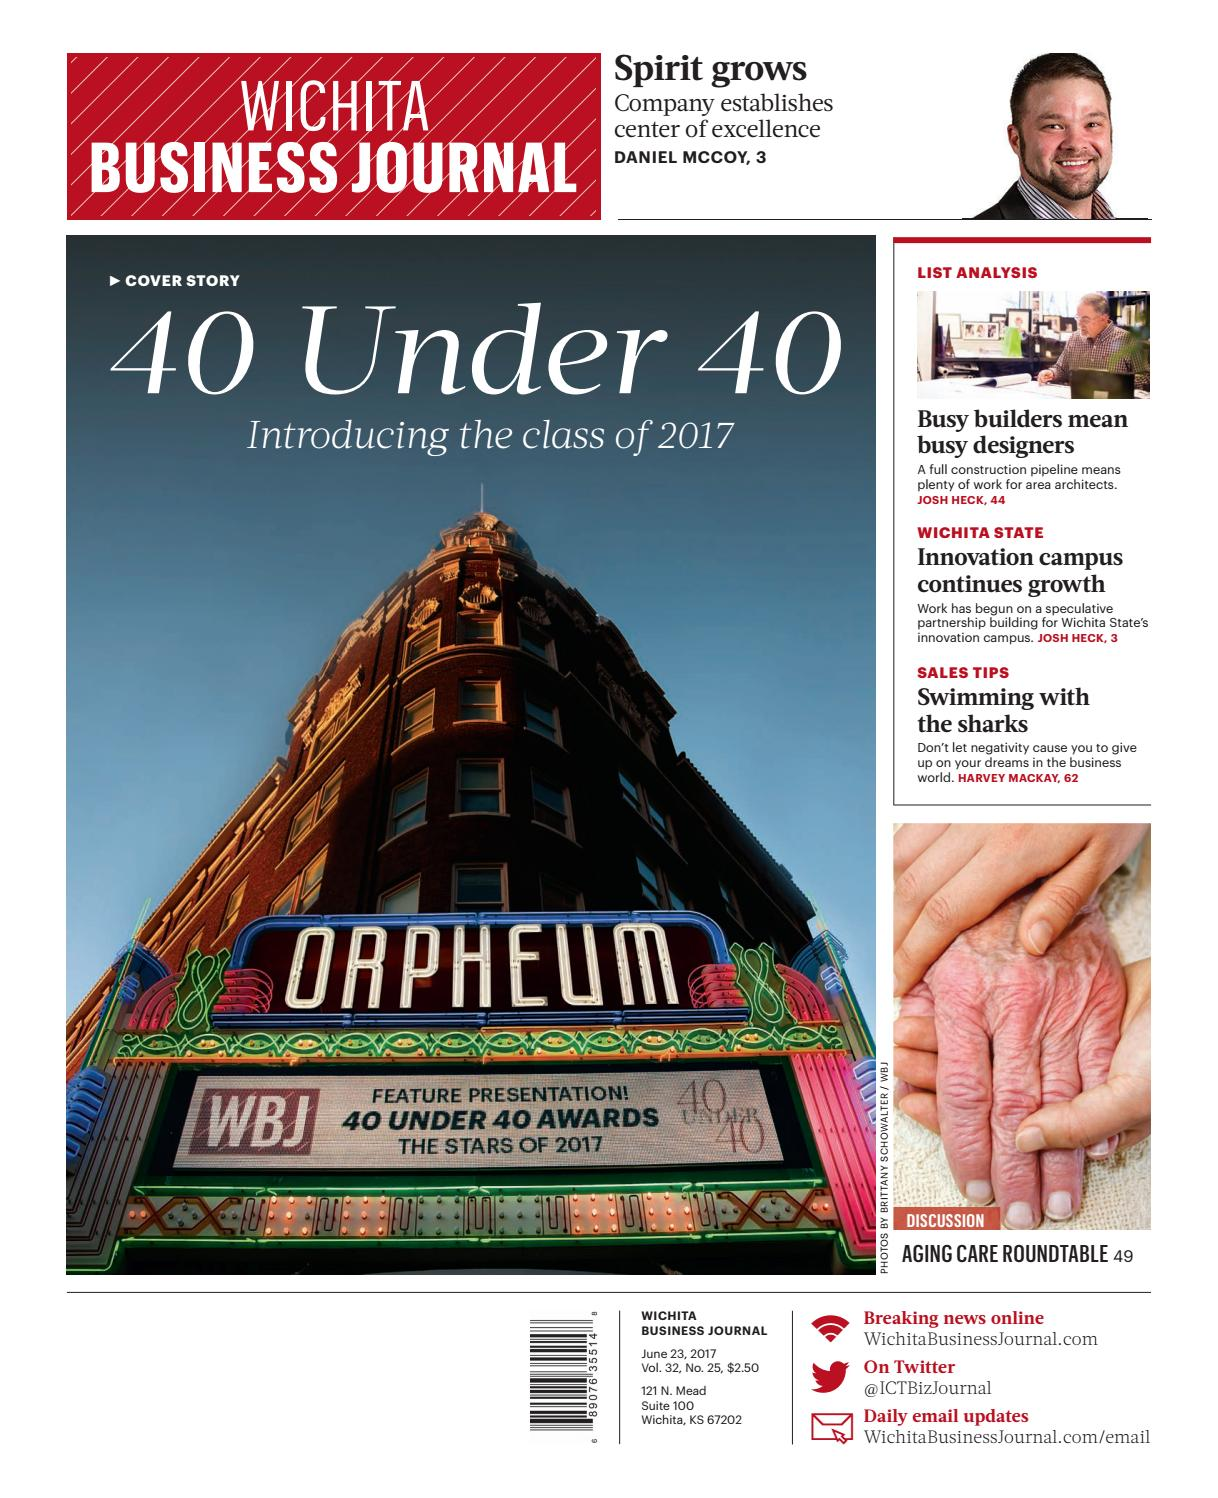 2018 Wichita Business Journal Special Section 40 Under 401 By Bill Compact Redstone 5clock With On Off Switch Roy Issuu